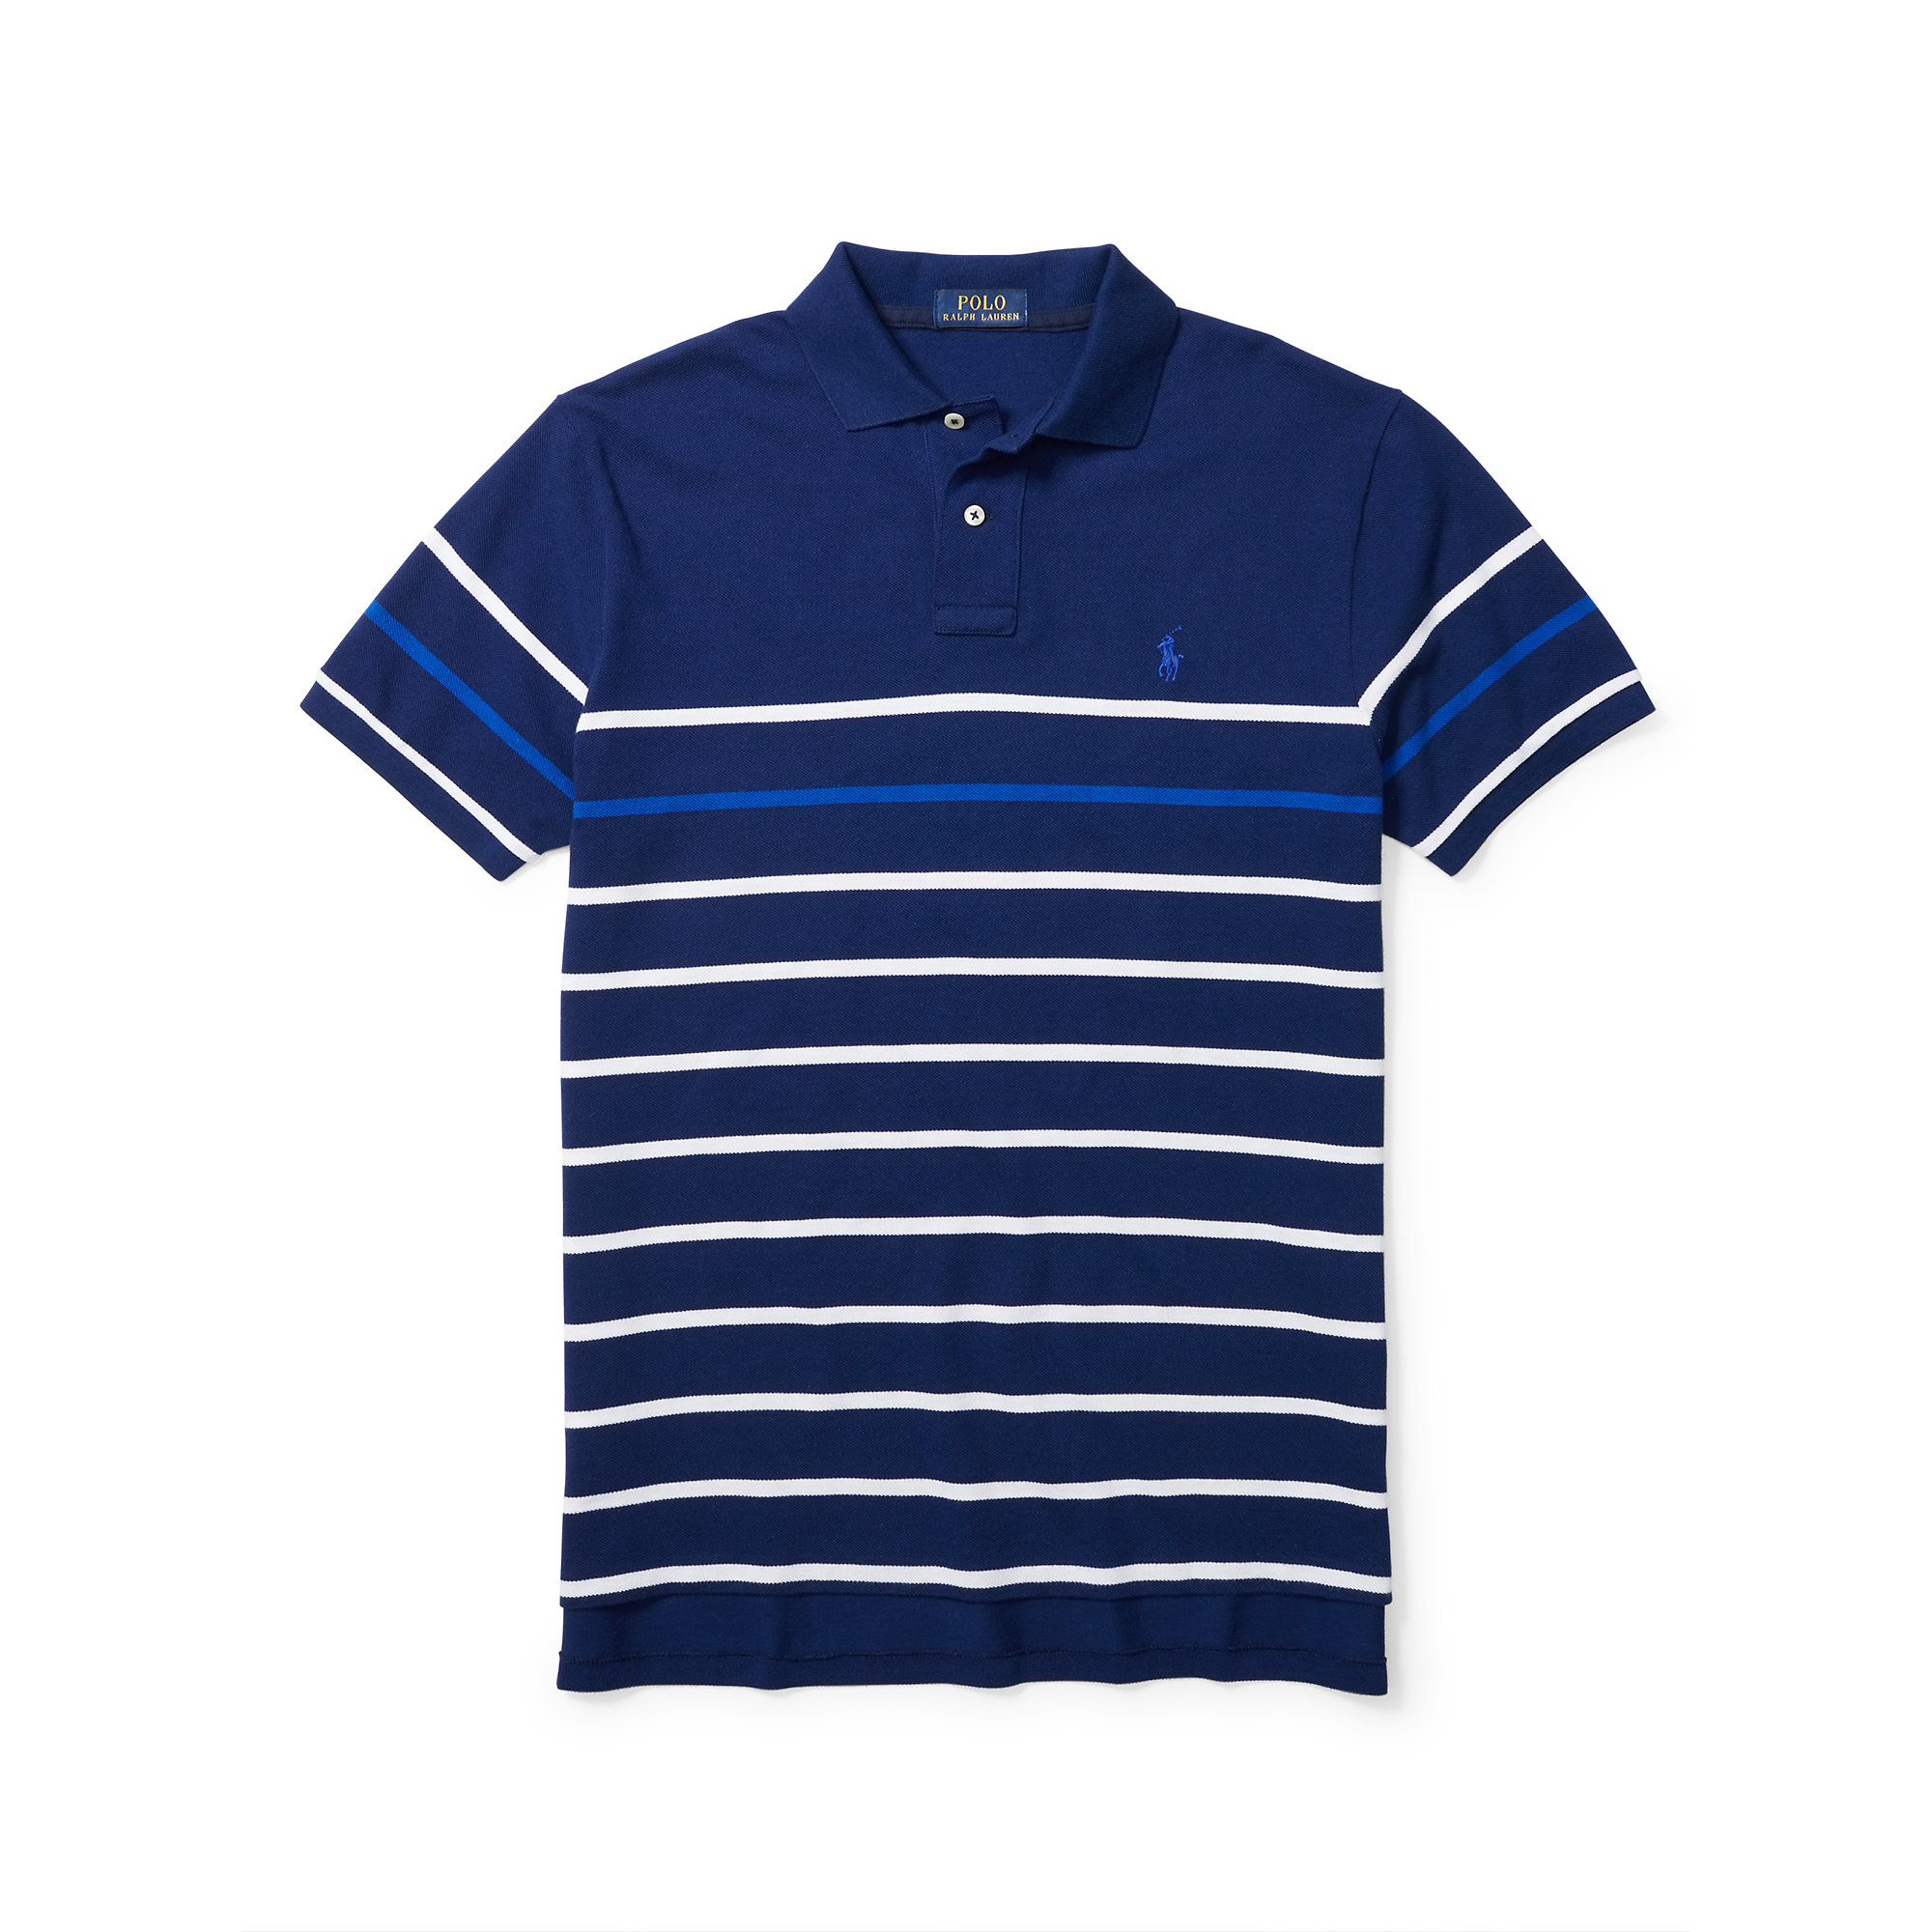 polo ralph lauren custom fit striped polo shirt in blue. Black Bedroom Furniture Sets. Home Design Ideas